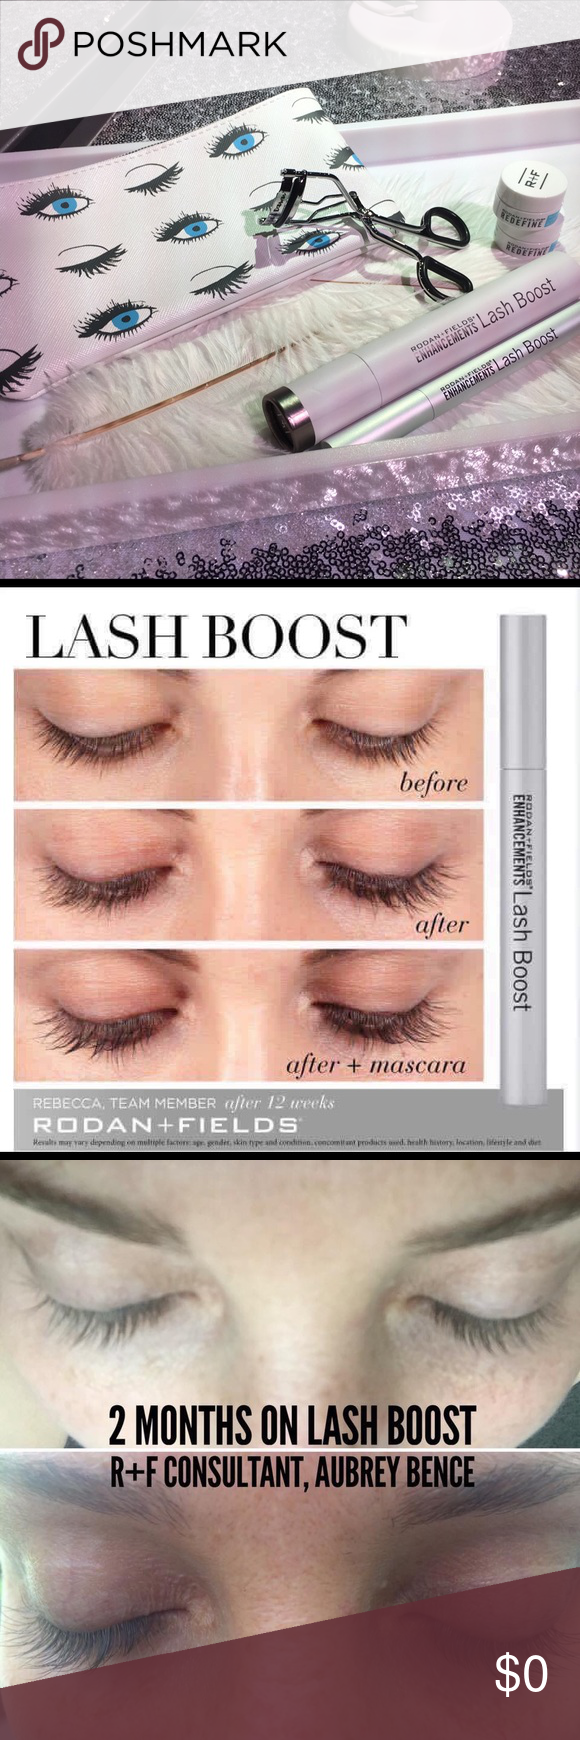 d5067e51b0c RODAN & FIELDS LASH BOOST! For over 4 years, the doctors of Proactiv and  Rodan & Fields have been working hard on creating their newest and most  amazing ...